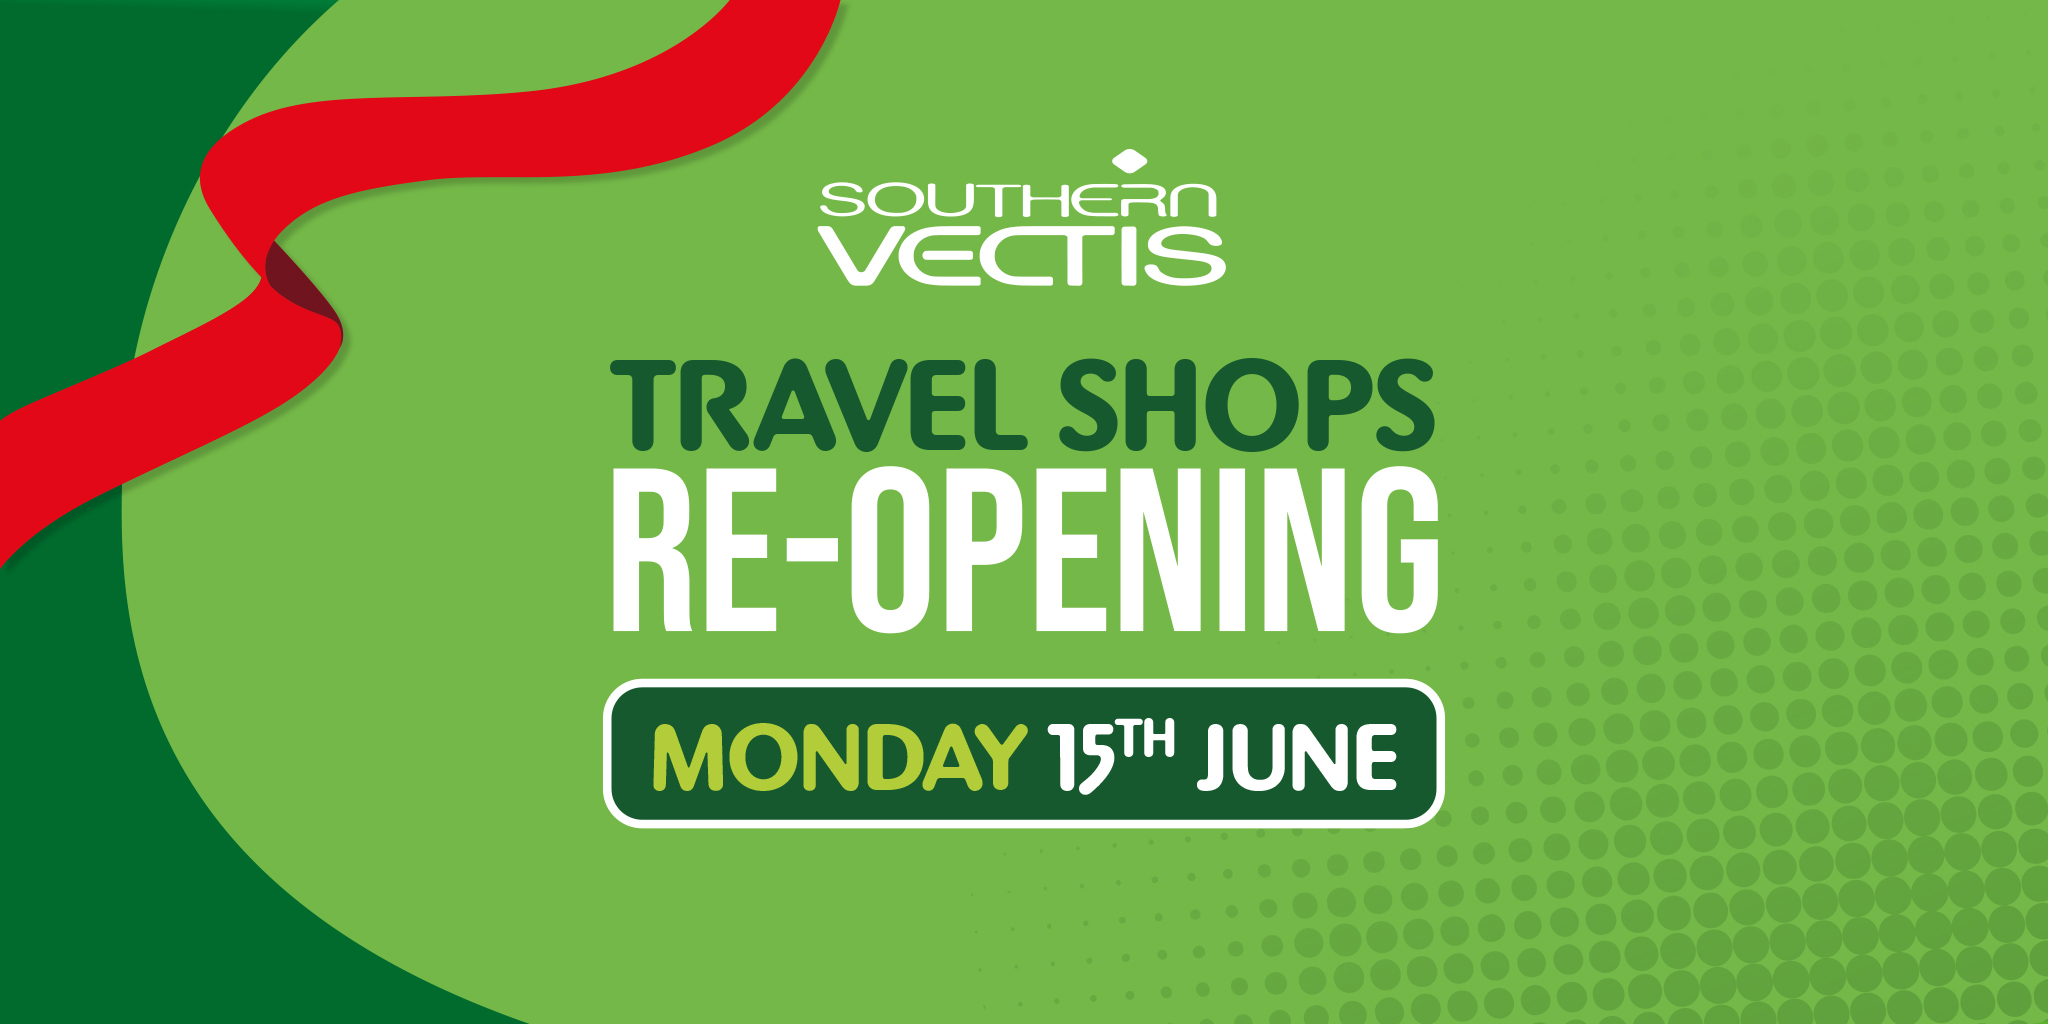 Image reading 'Southern Vectis Travel Shops Re-opening Monday 15th June'